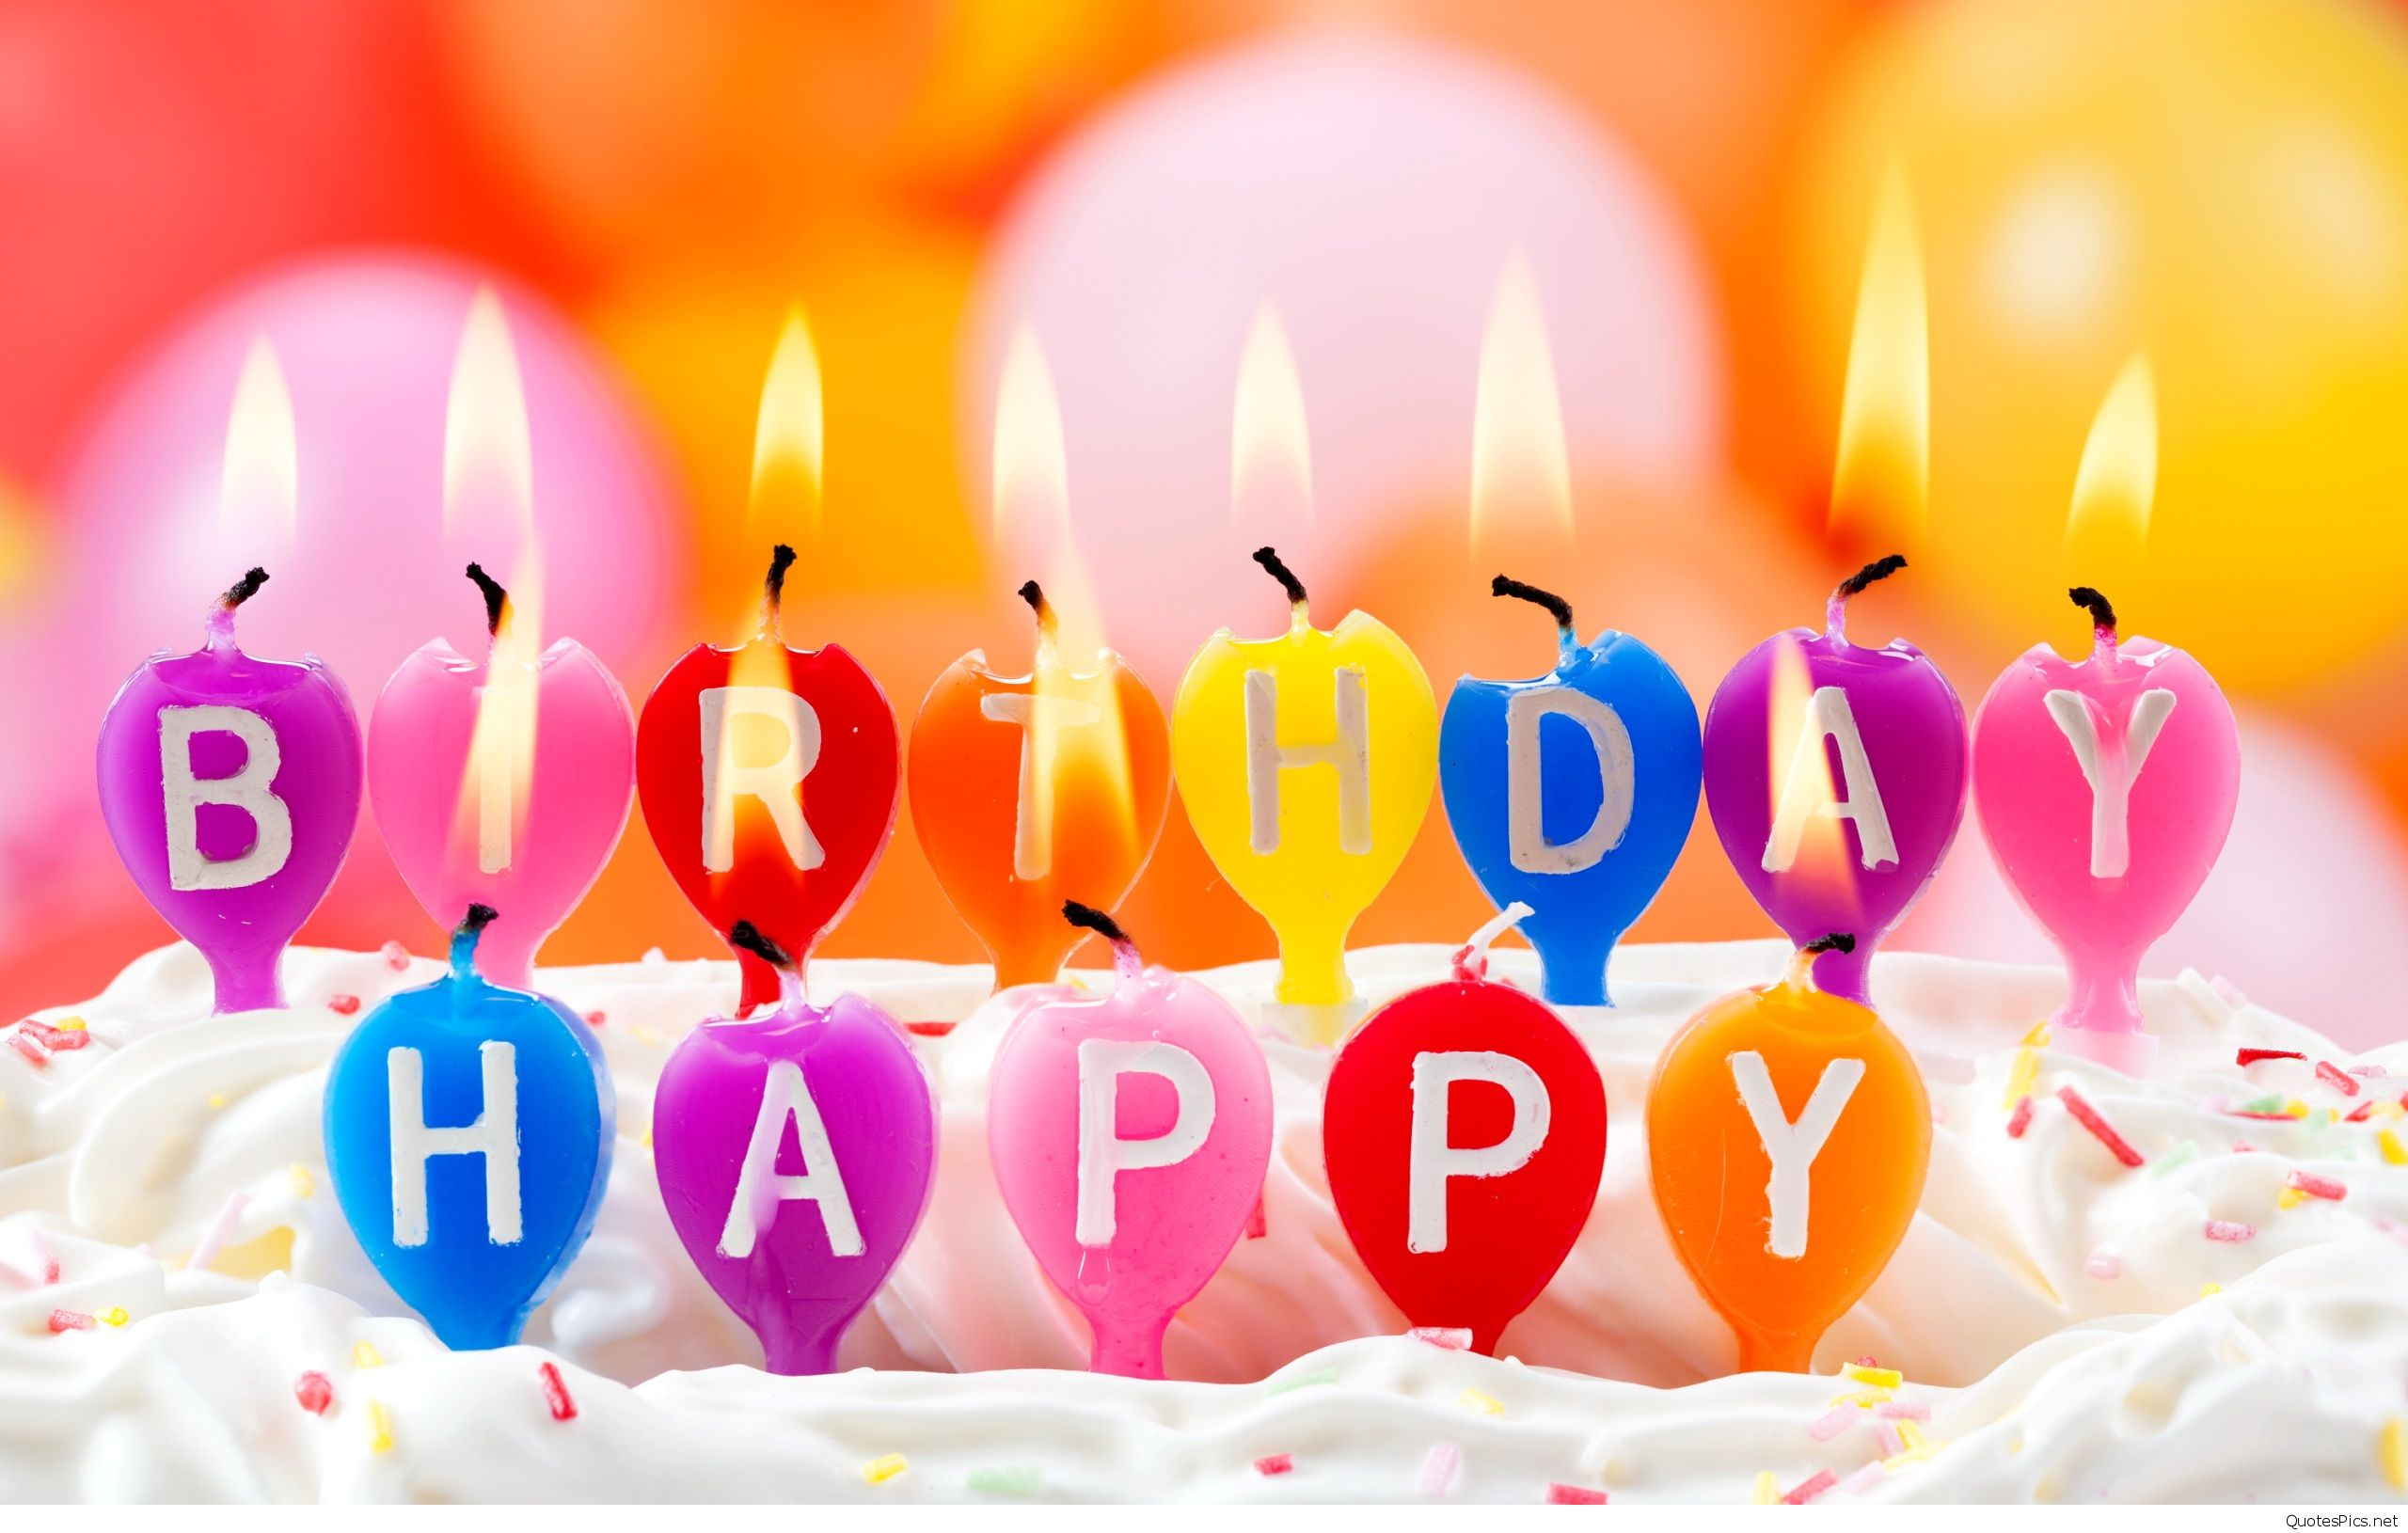 birthday message images for friend ; Birthday-Wishes-To-A-Best-Friend-Who-Is-Far-Away-Plus-Birthday-Greetings-To-A-Friend-Abroad-As-Well-As-Birthday-Greetings-To-A-Friend-With-Message